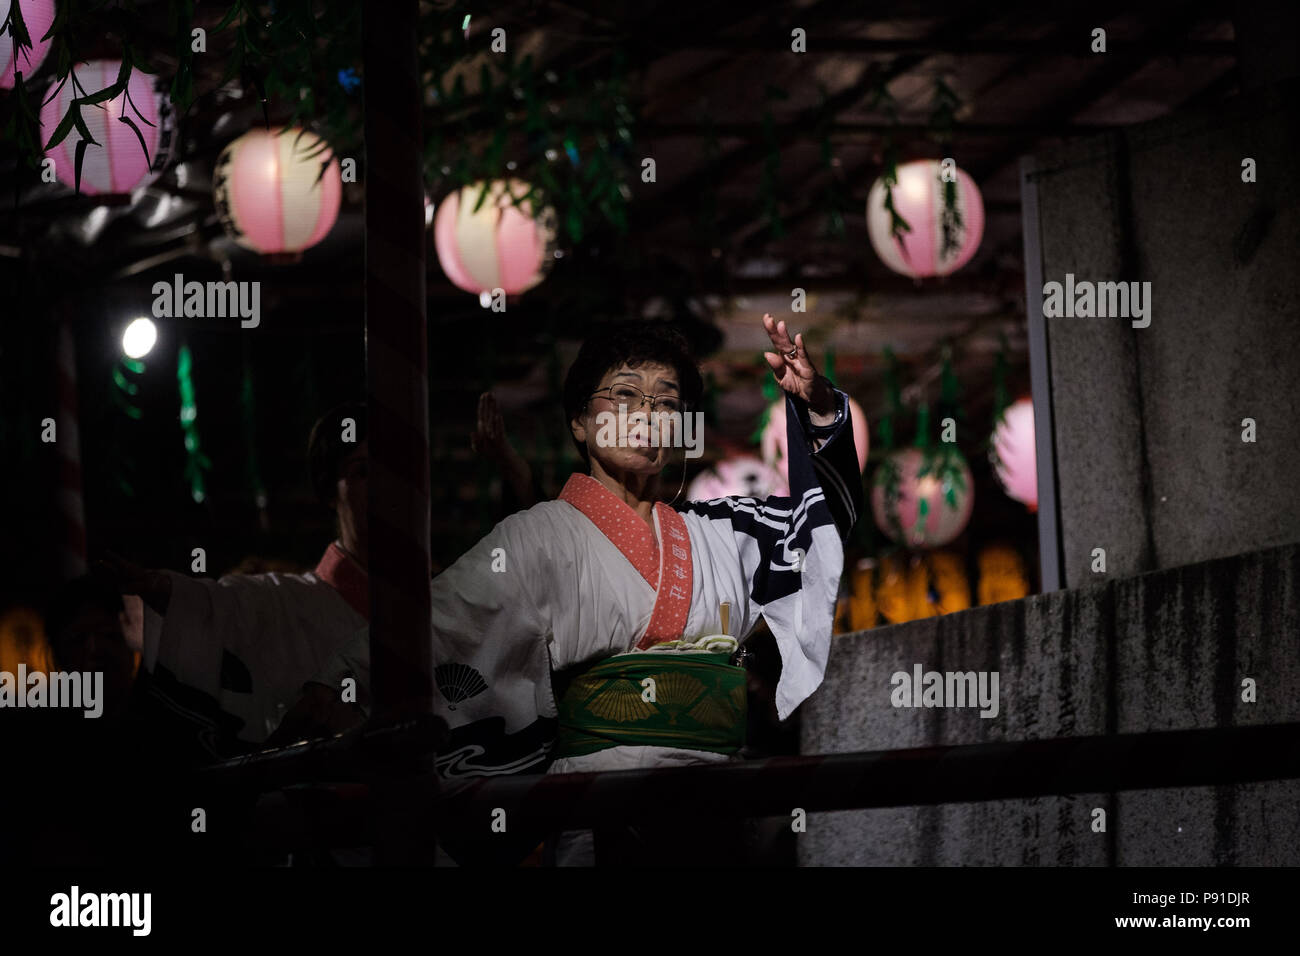 Tokyo, Japan, 13 July 2018. People dance on traditional festival music with lit paper lanterns on background during the Mitama Matsuri summer festival at Yasukuni Shrine on July 13, 2018 in Tokyo, Japan. The four-day traditional festival takes place during Tokyo's Bon period in July attracting about 300,000 visitors, according to the shrine. July 13, 2018 Credit: Nicolas Datiche/AFLO/Alamy Live News - Stock Image